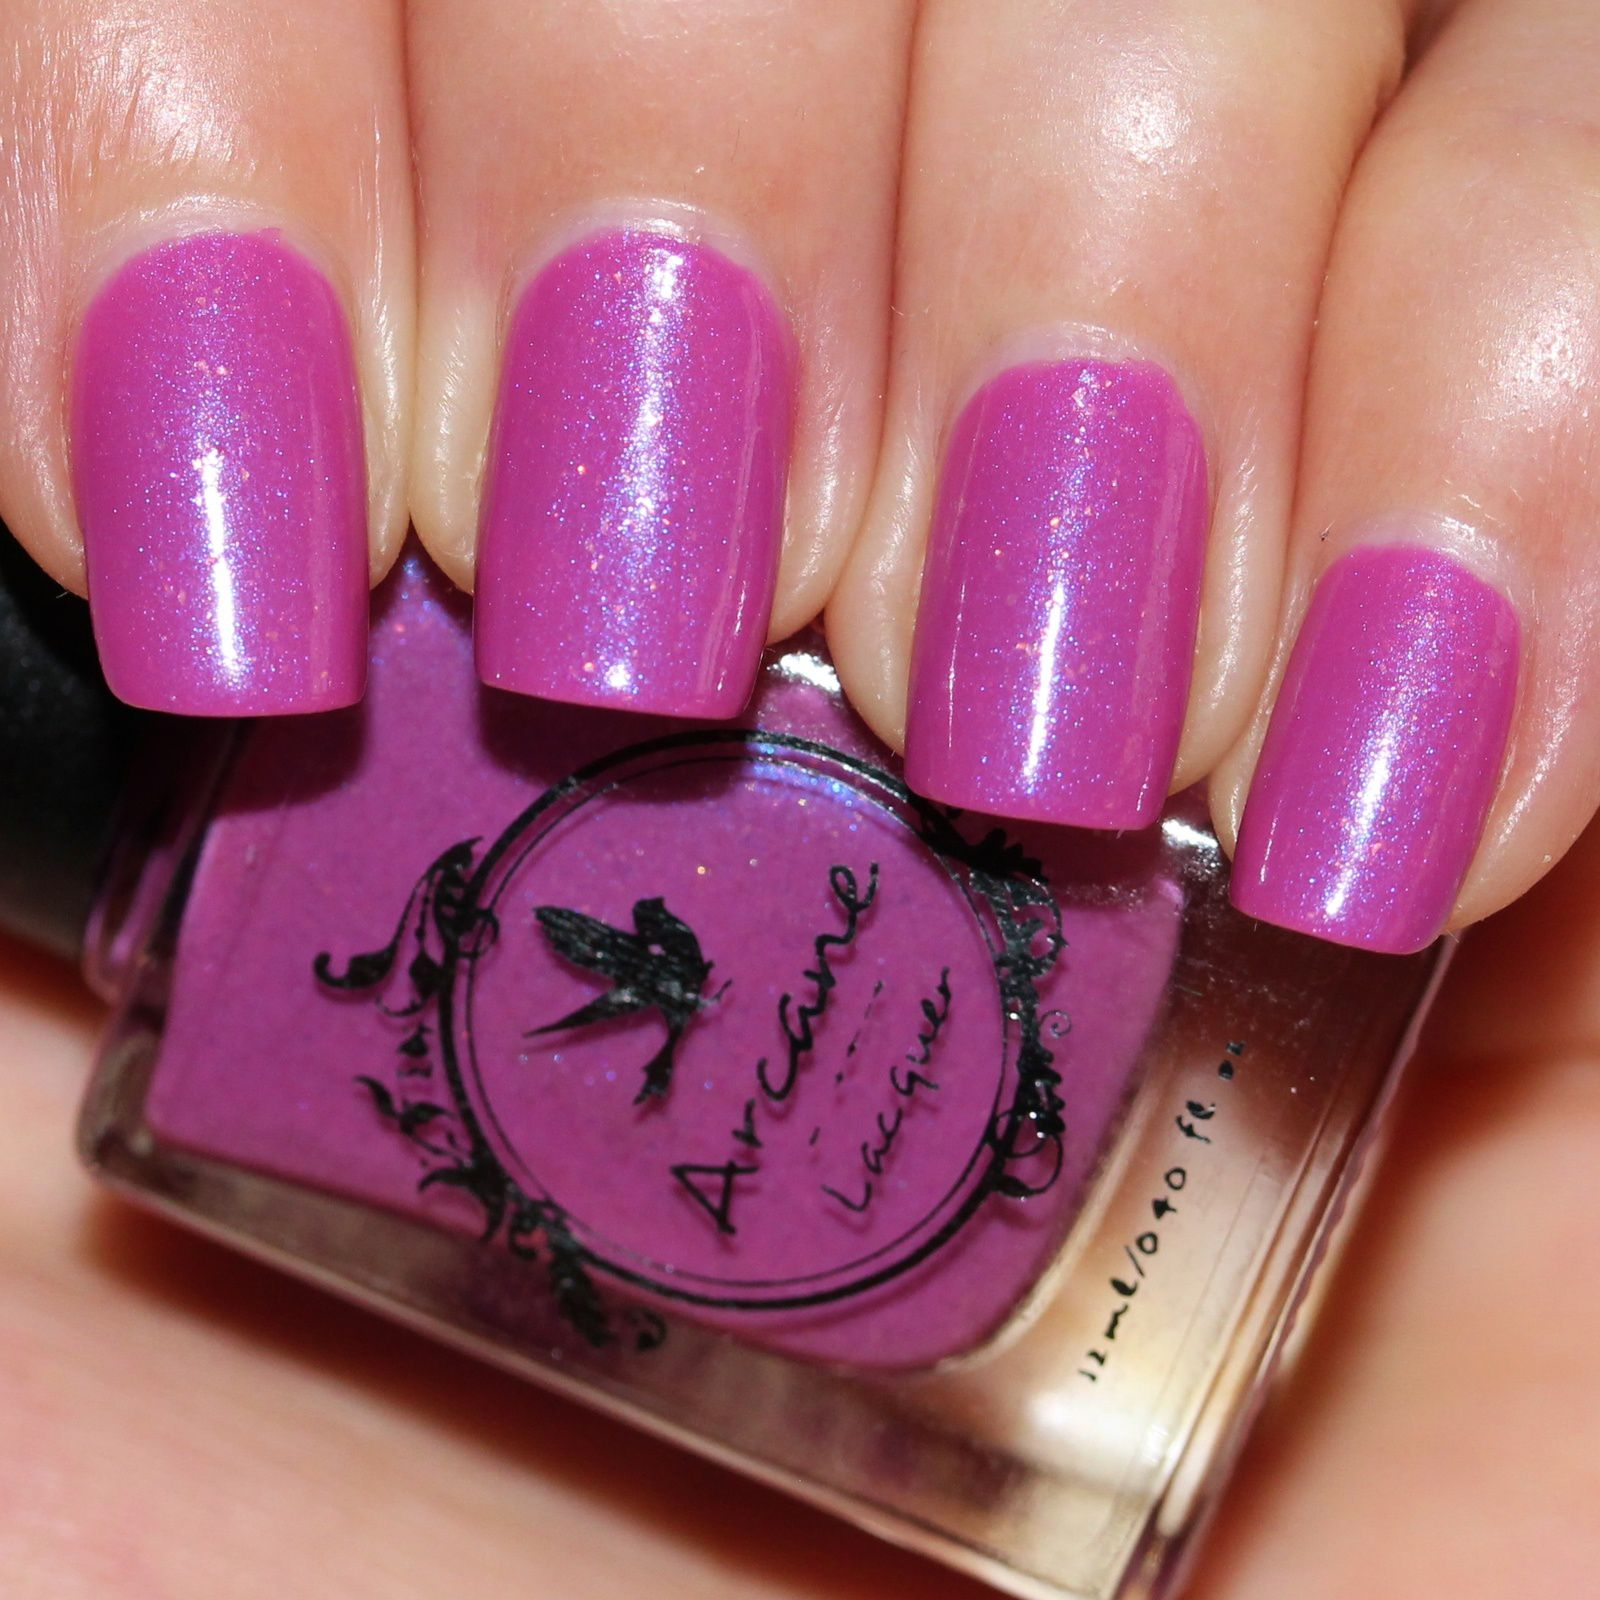 Arcane Lacquer Glooms Vileplume (2 coats, no top coat)